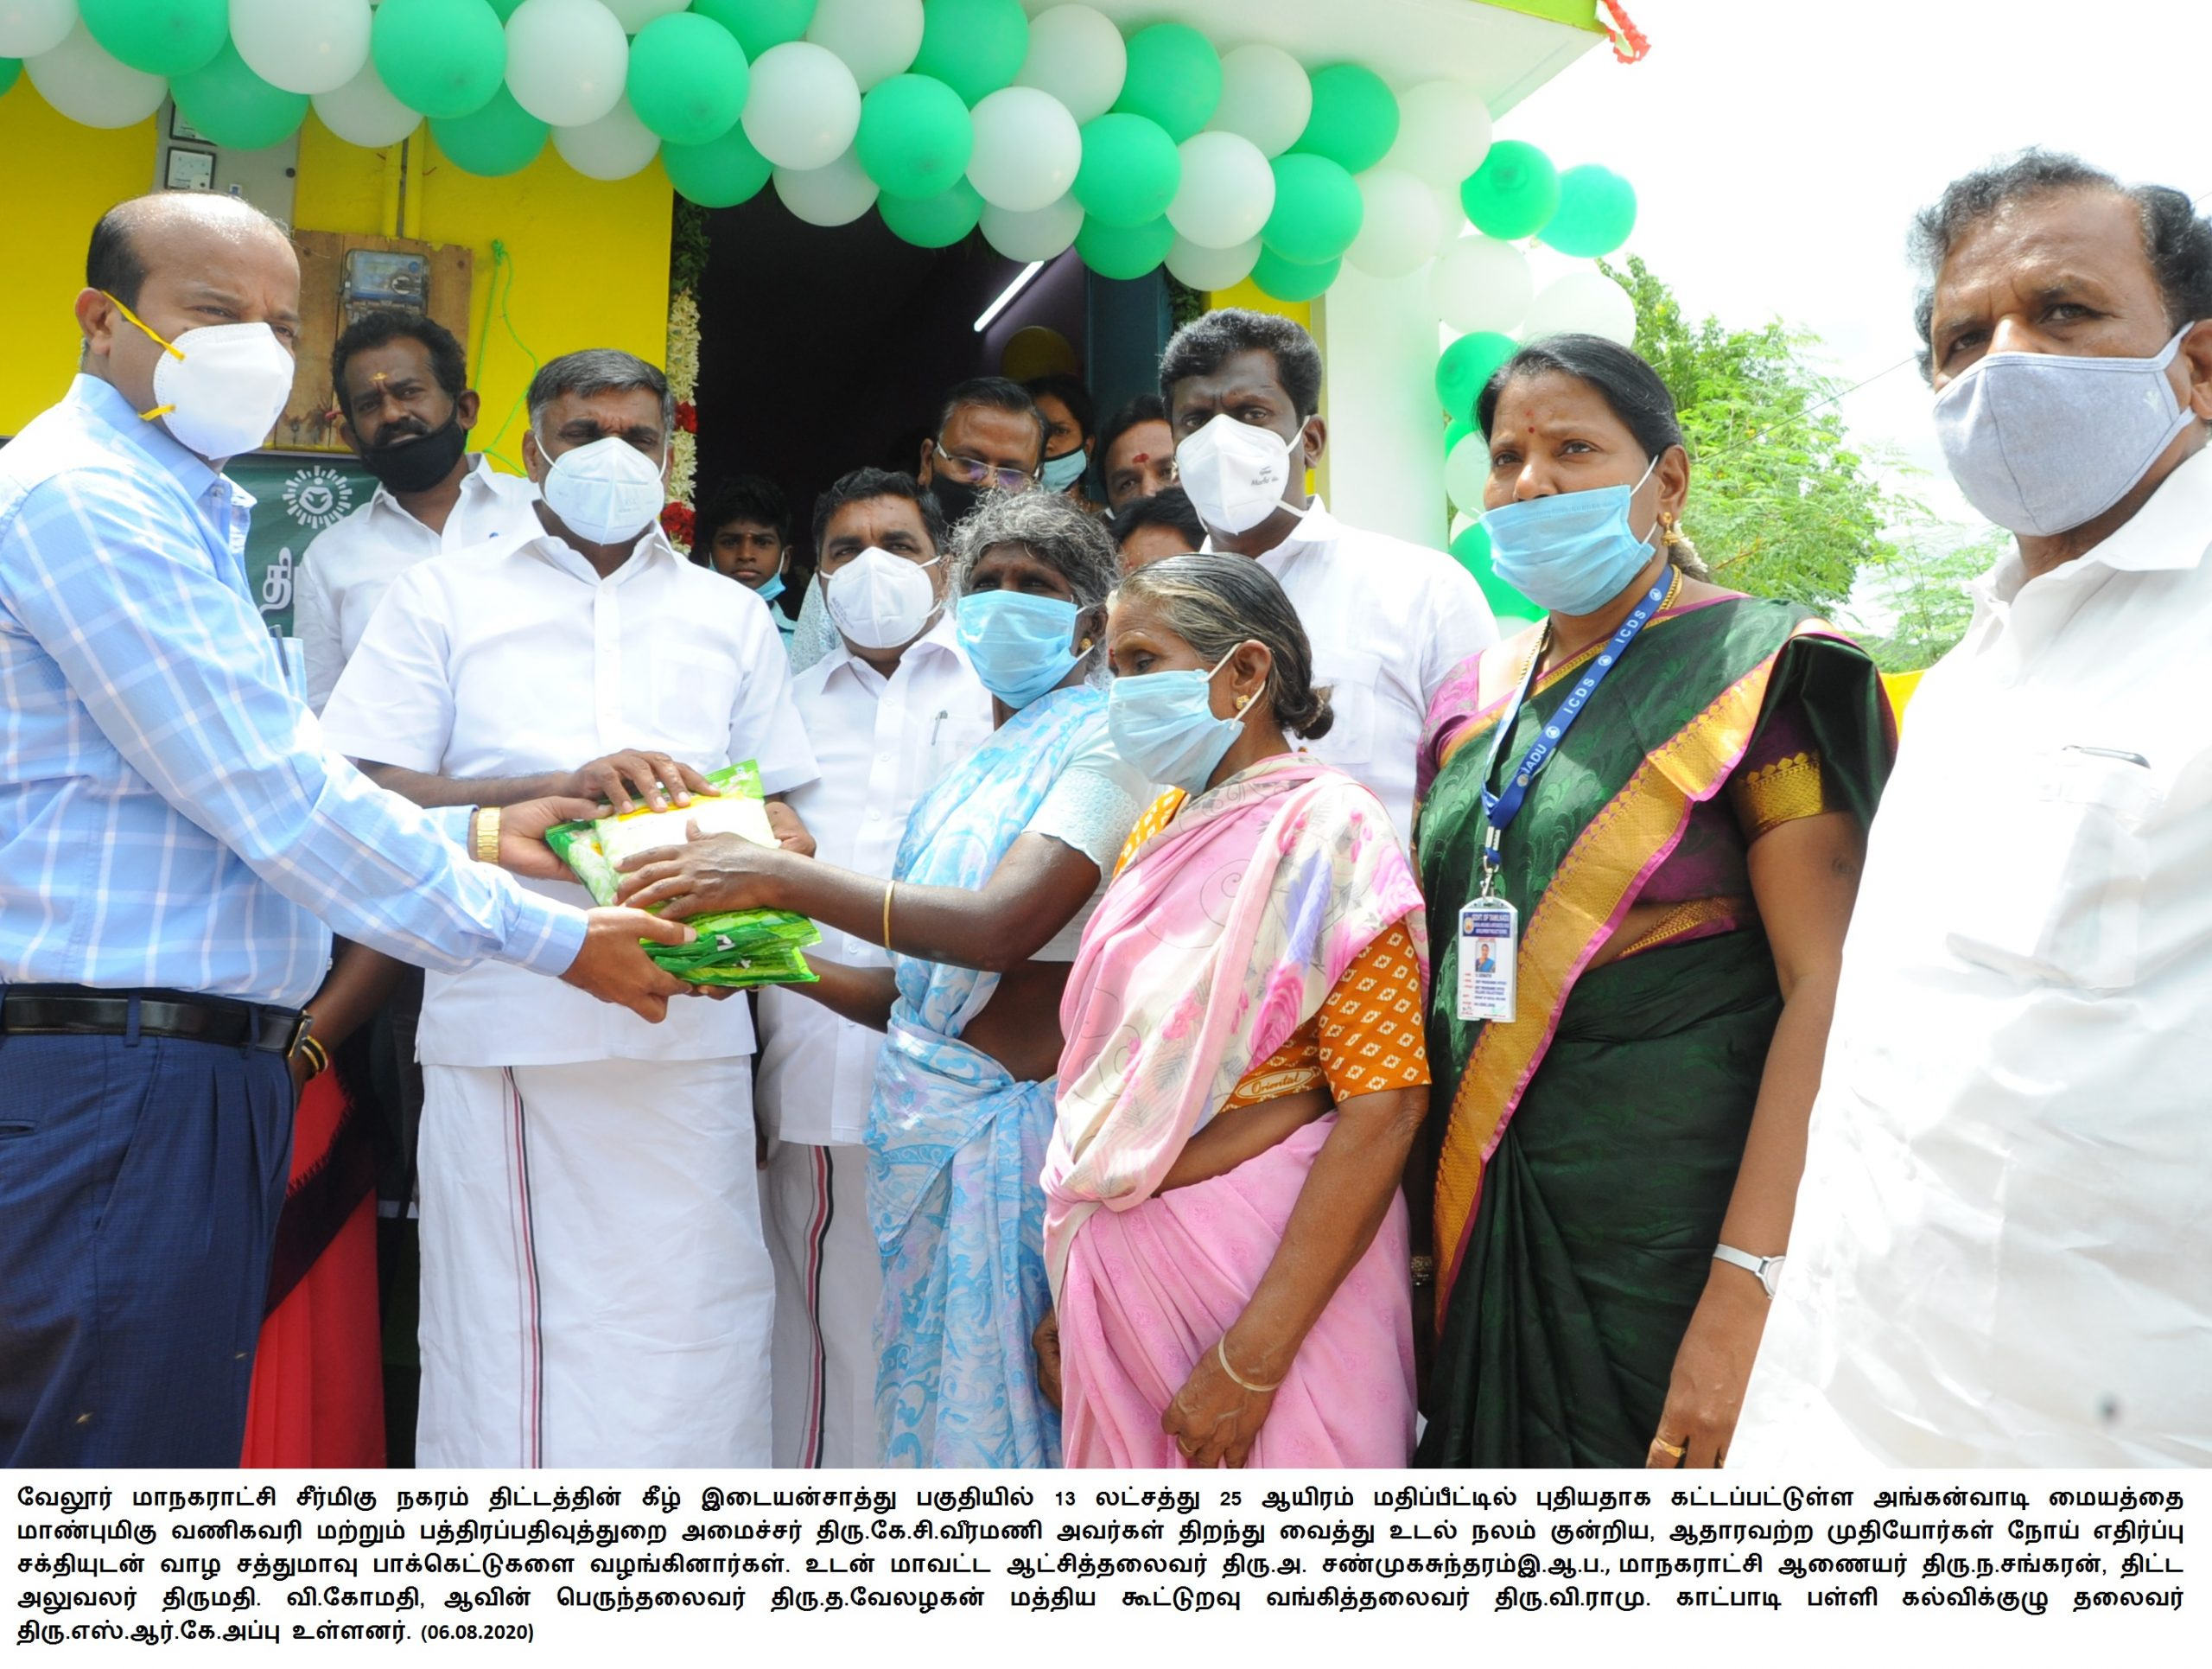 Honorable Minister K C Veeramani Given Healthy Food to Old age People at Vellore 06-08-2020